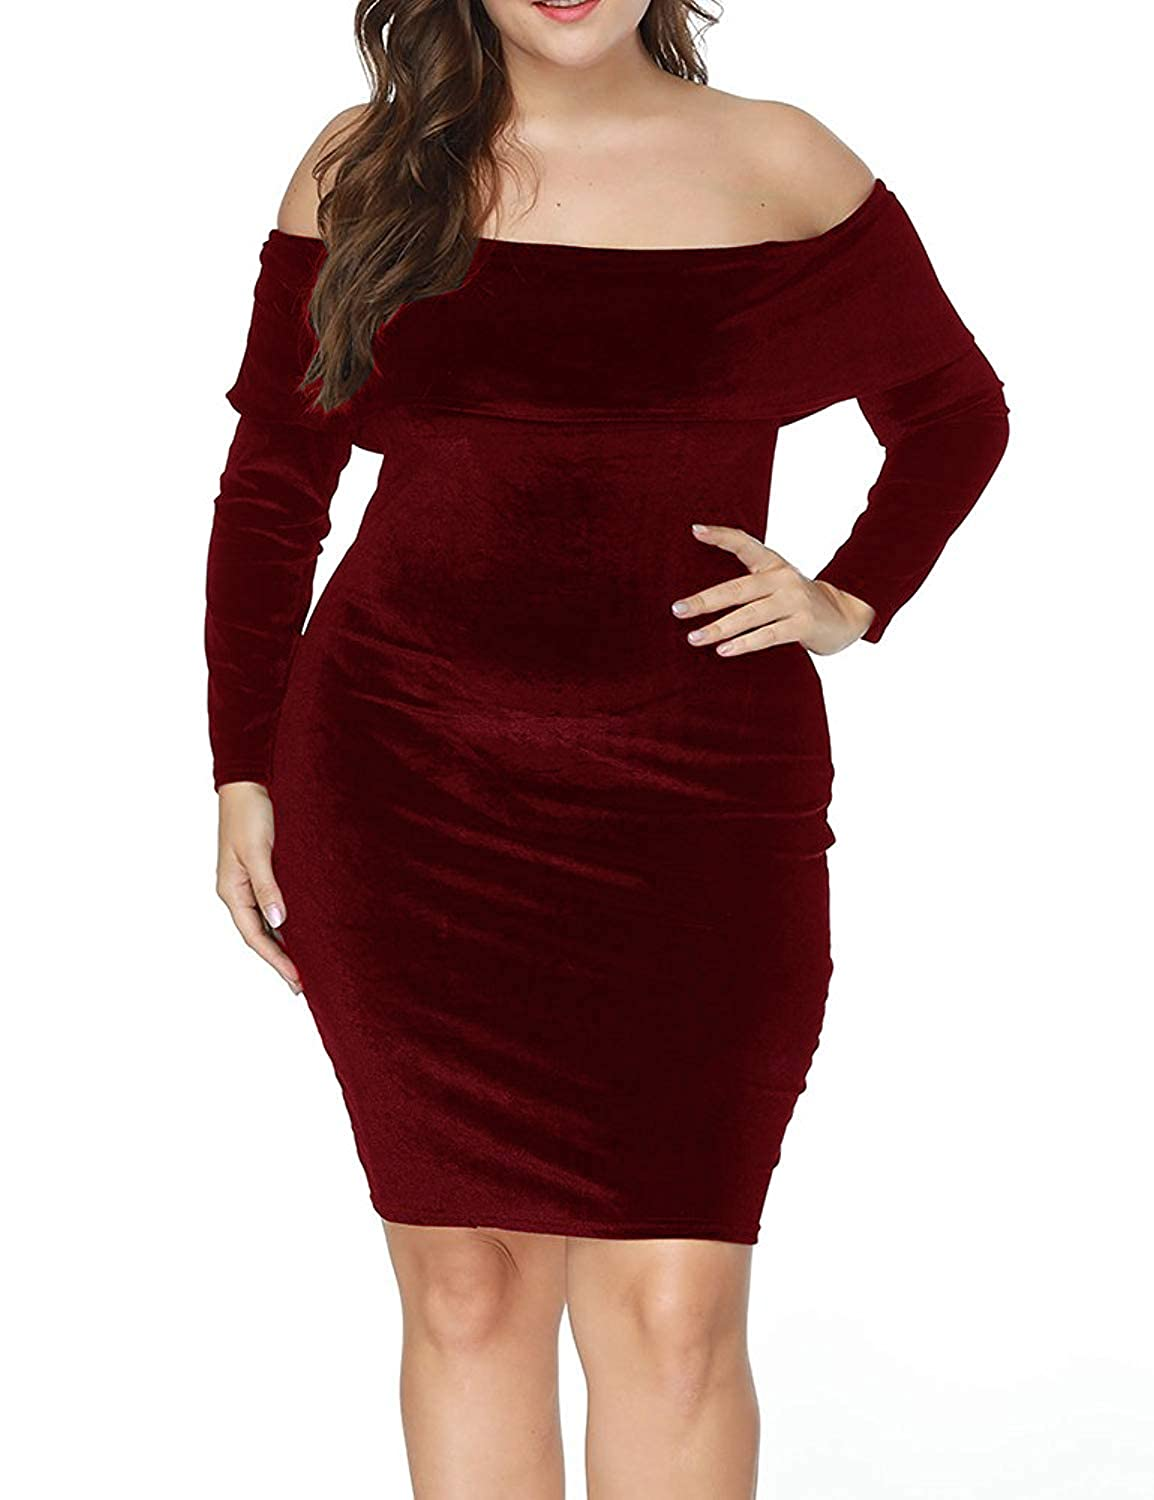 a9691d2a5eb Top 10 wholesale Plus Size Red Off The Shoulder Dress - Chinabrands.com